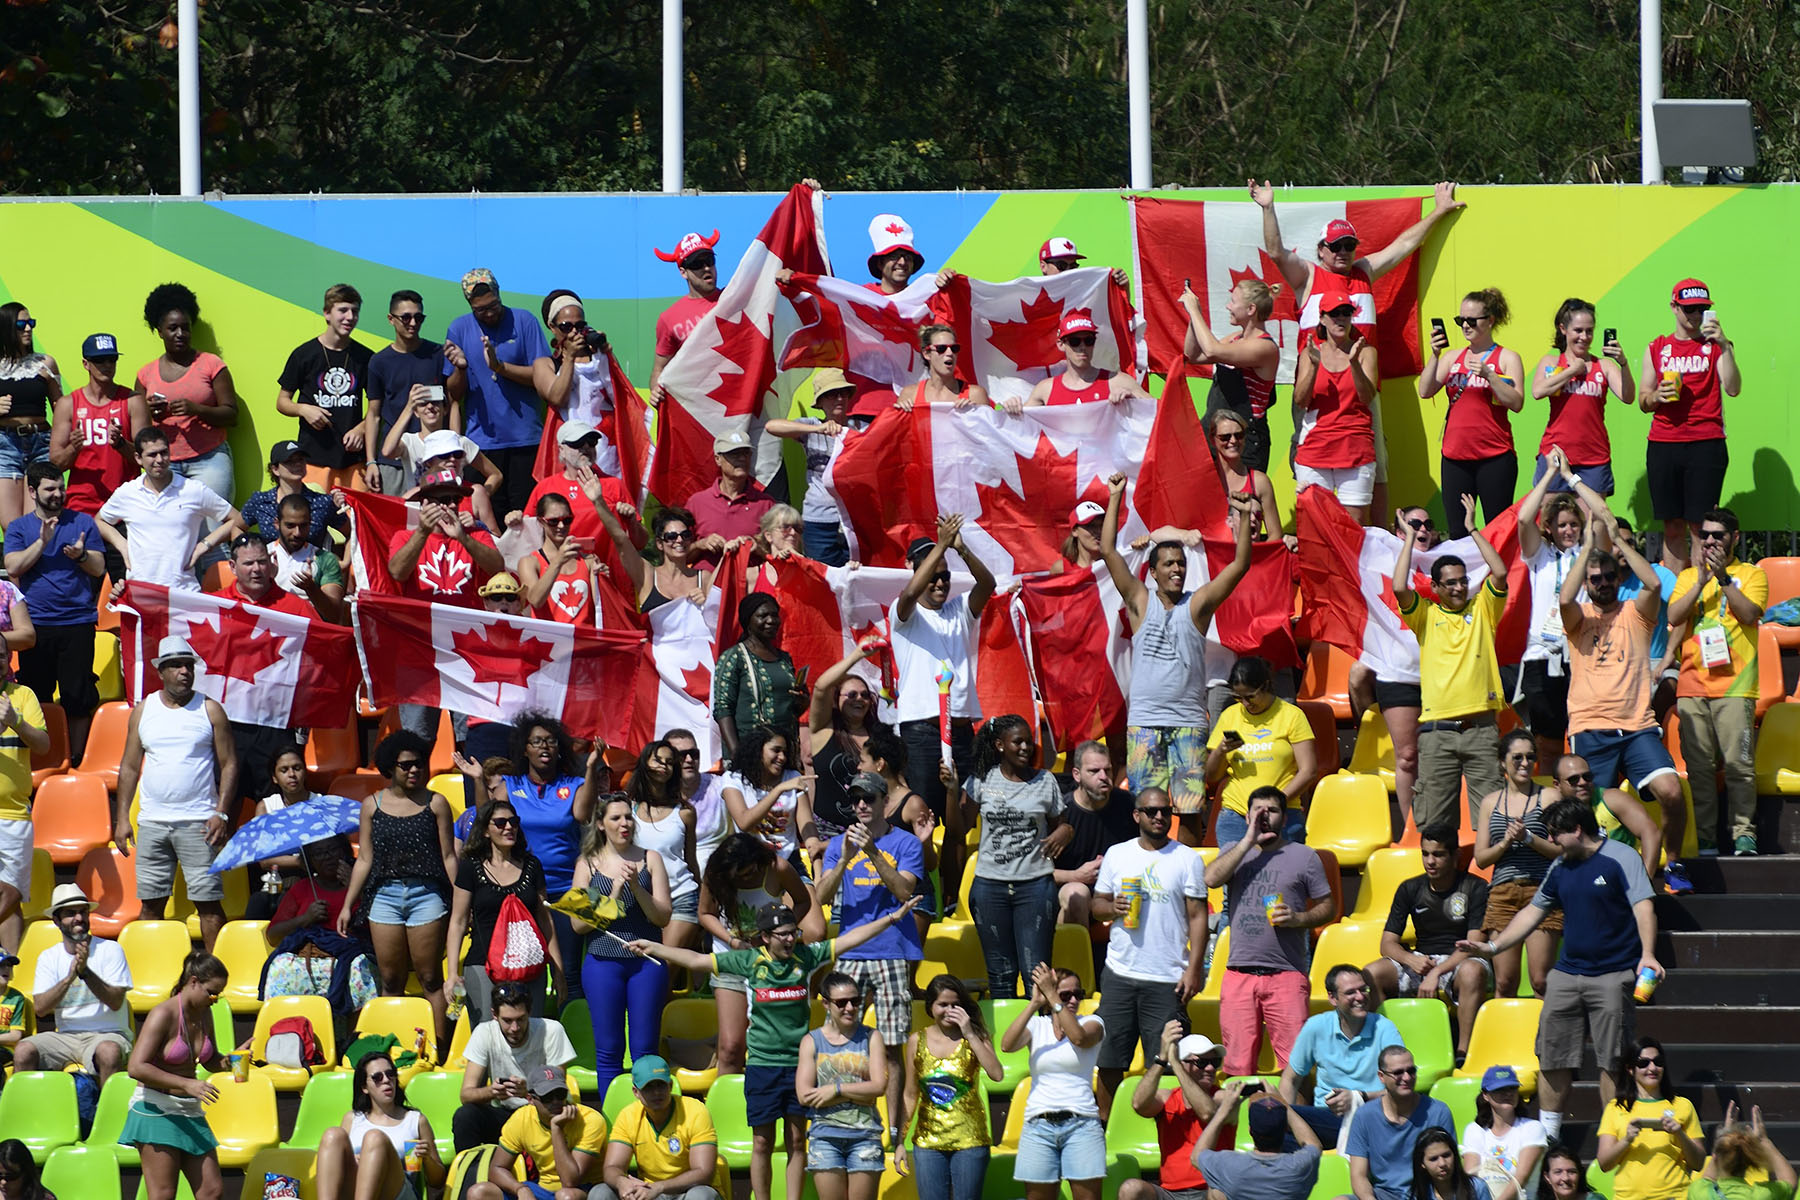 Canadian fans proudly showed their flags in support of our athletes.